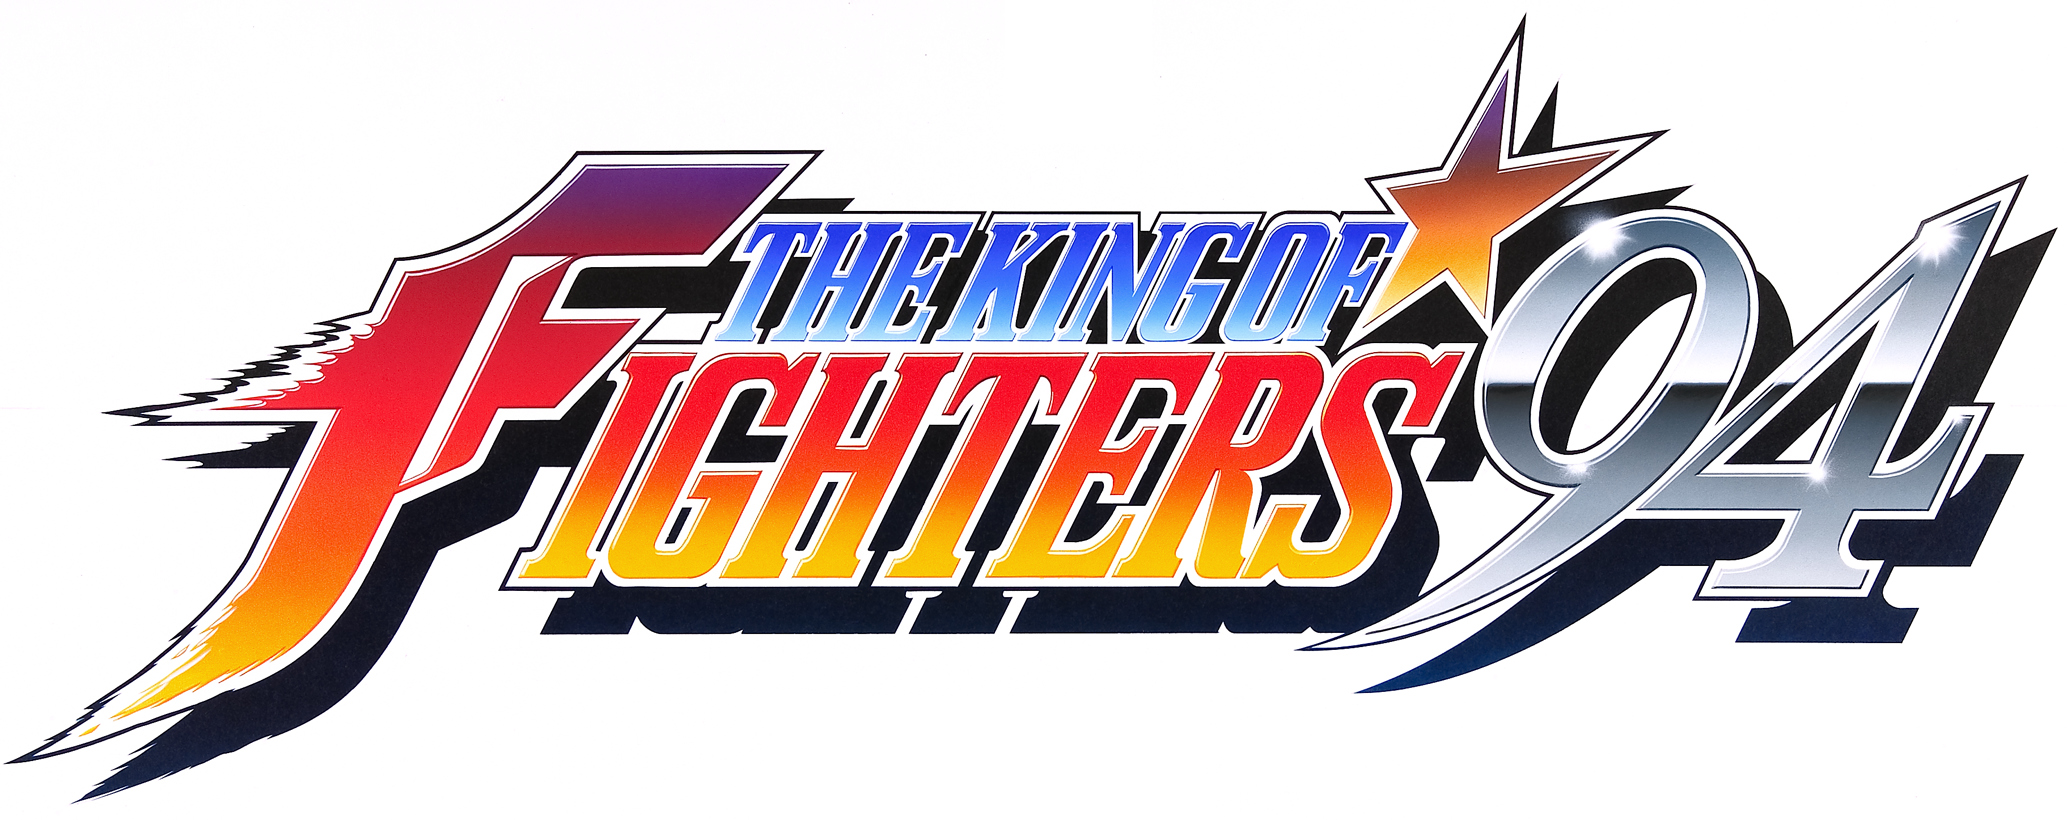 King of Fighters 94 Logo.